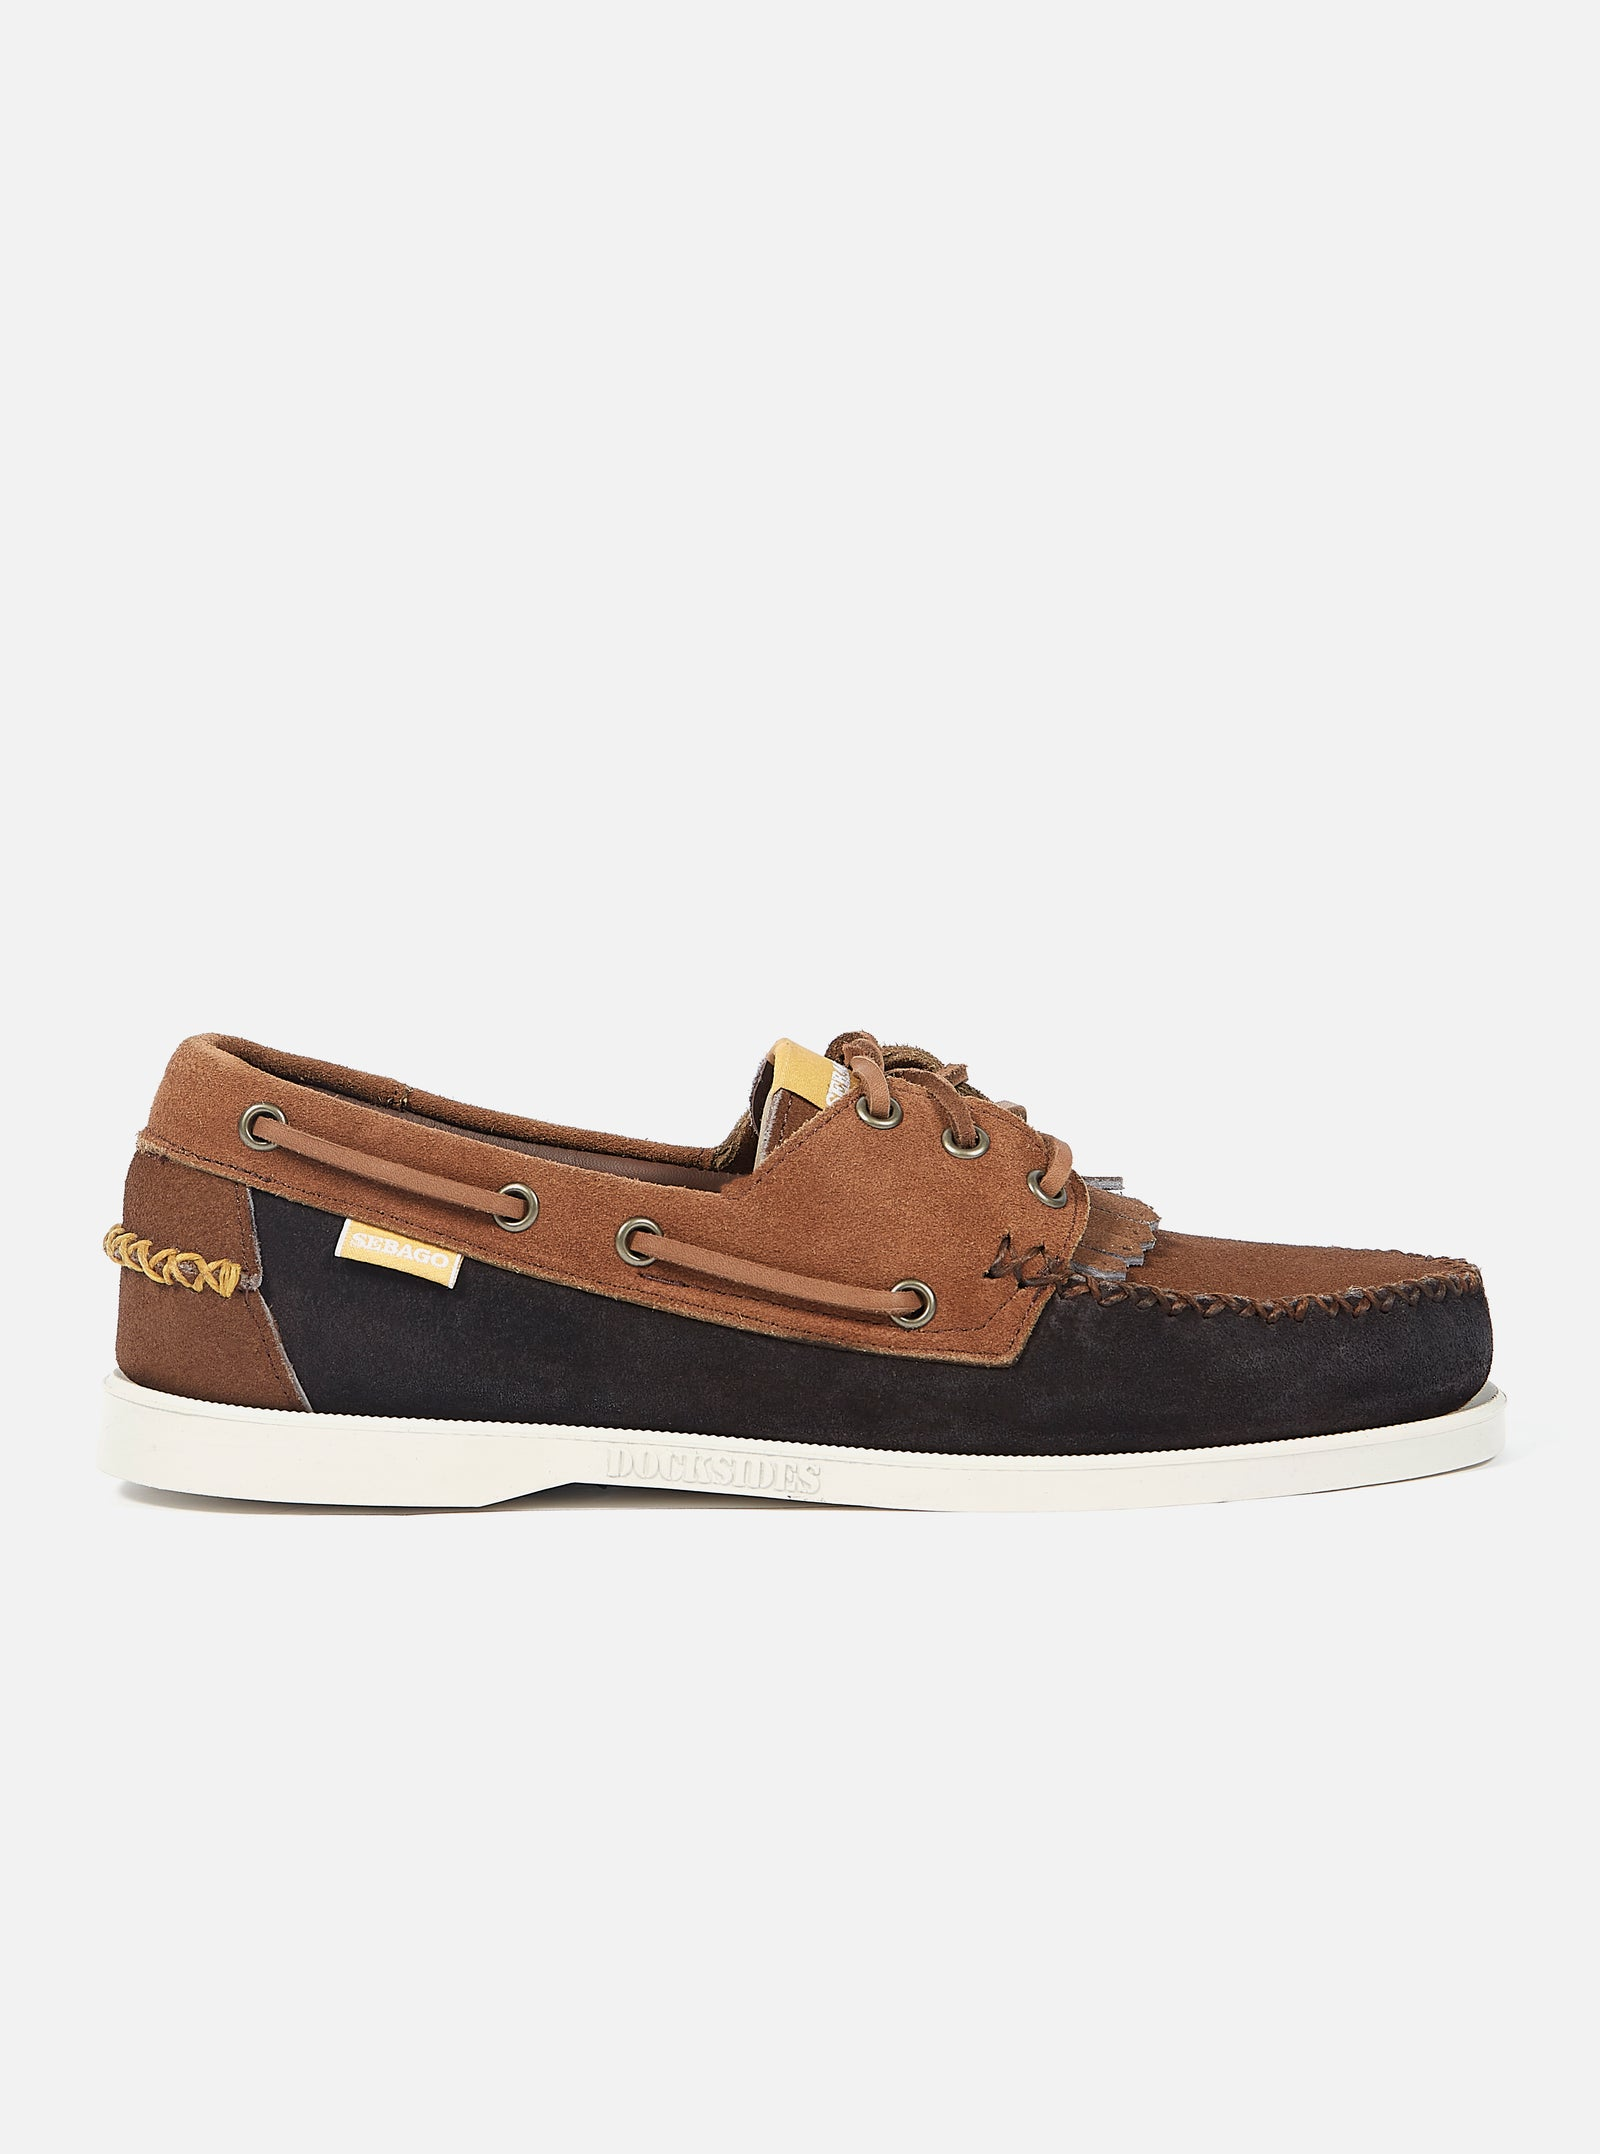 Universal Works x Sebago Portland Multi-Tone in Dark Brown Suede